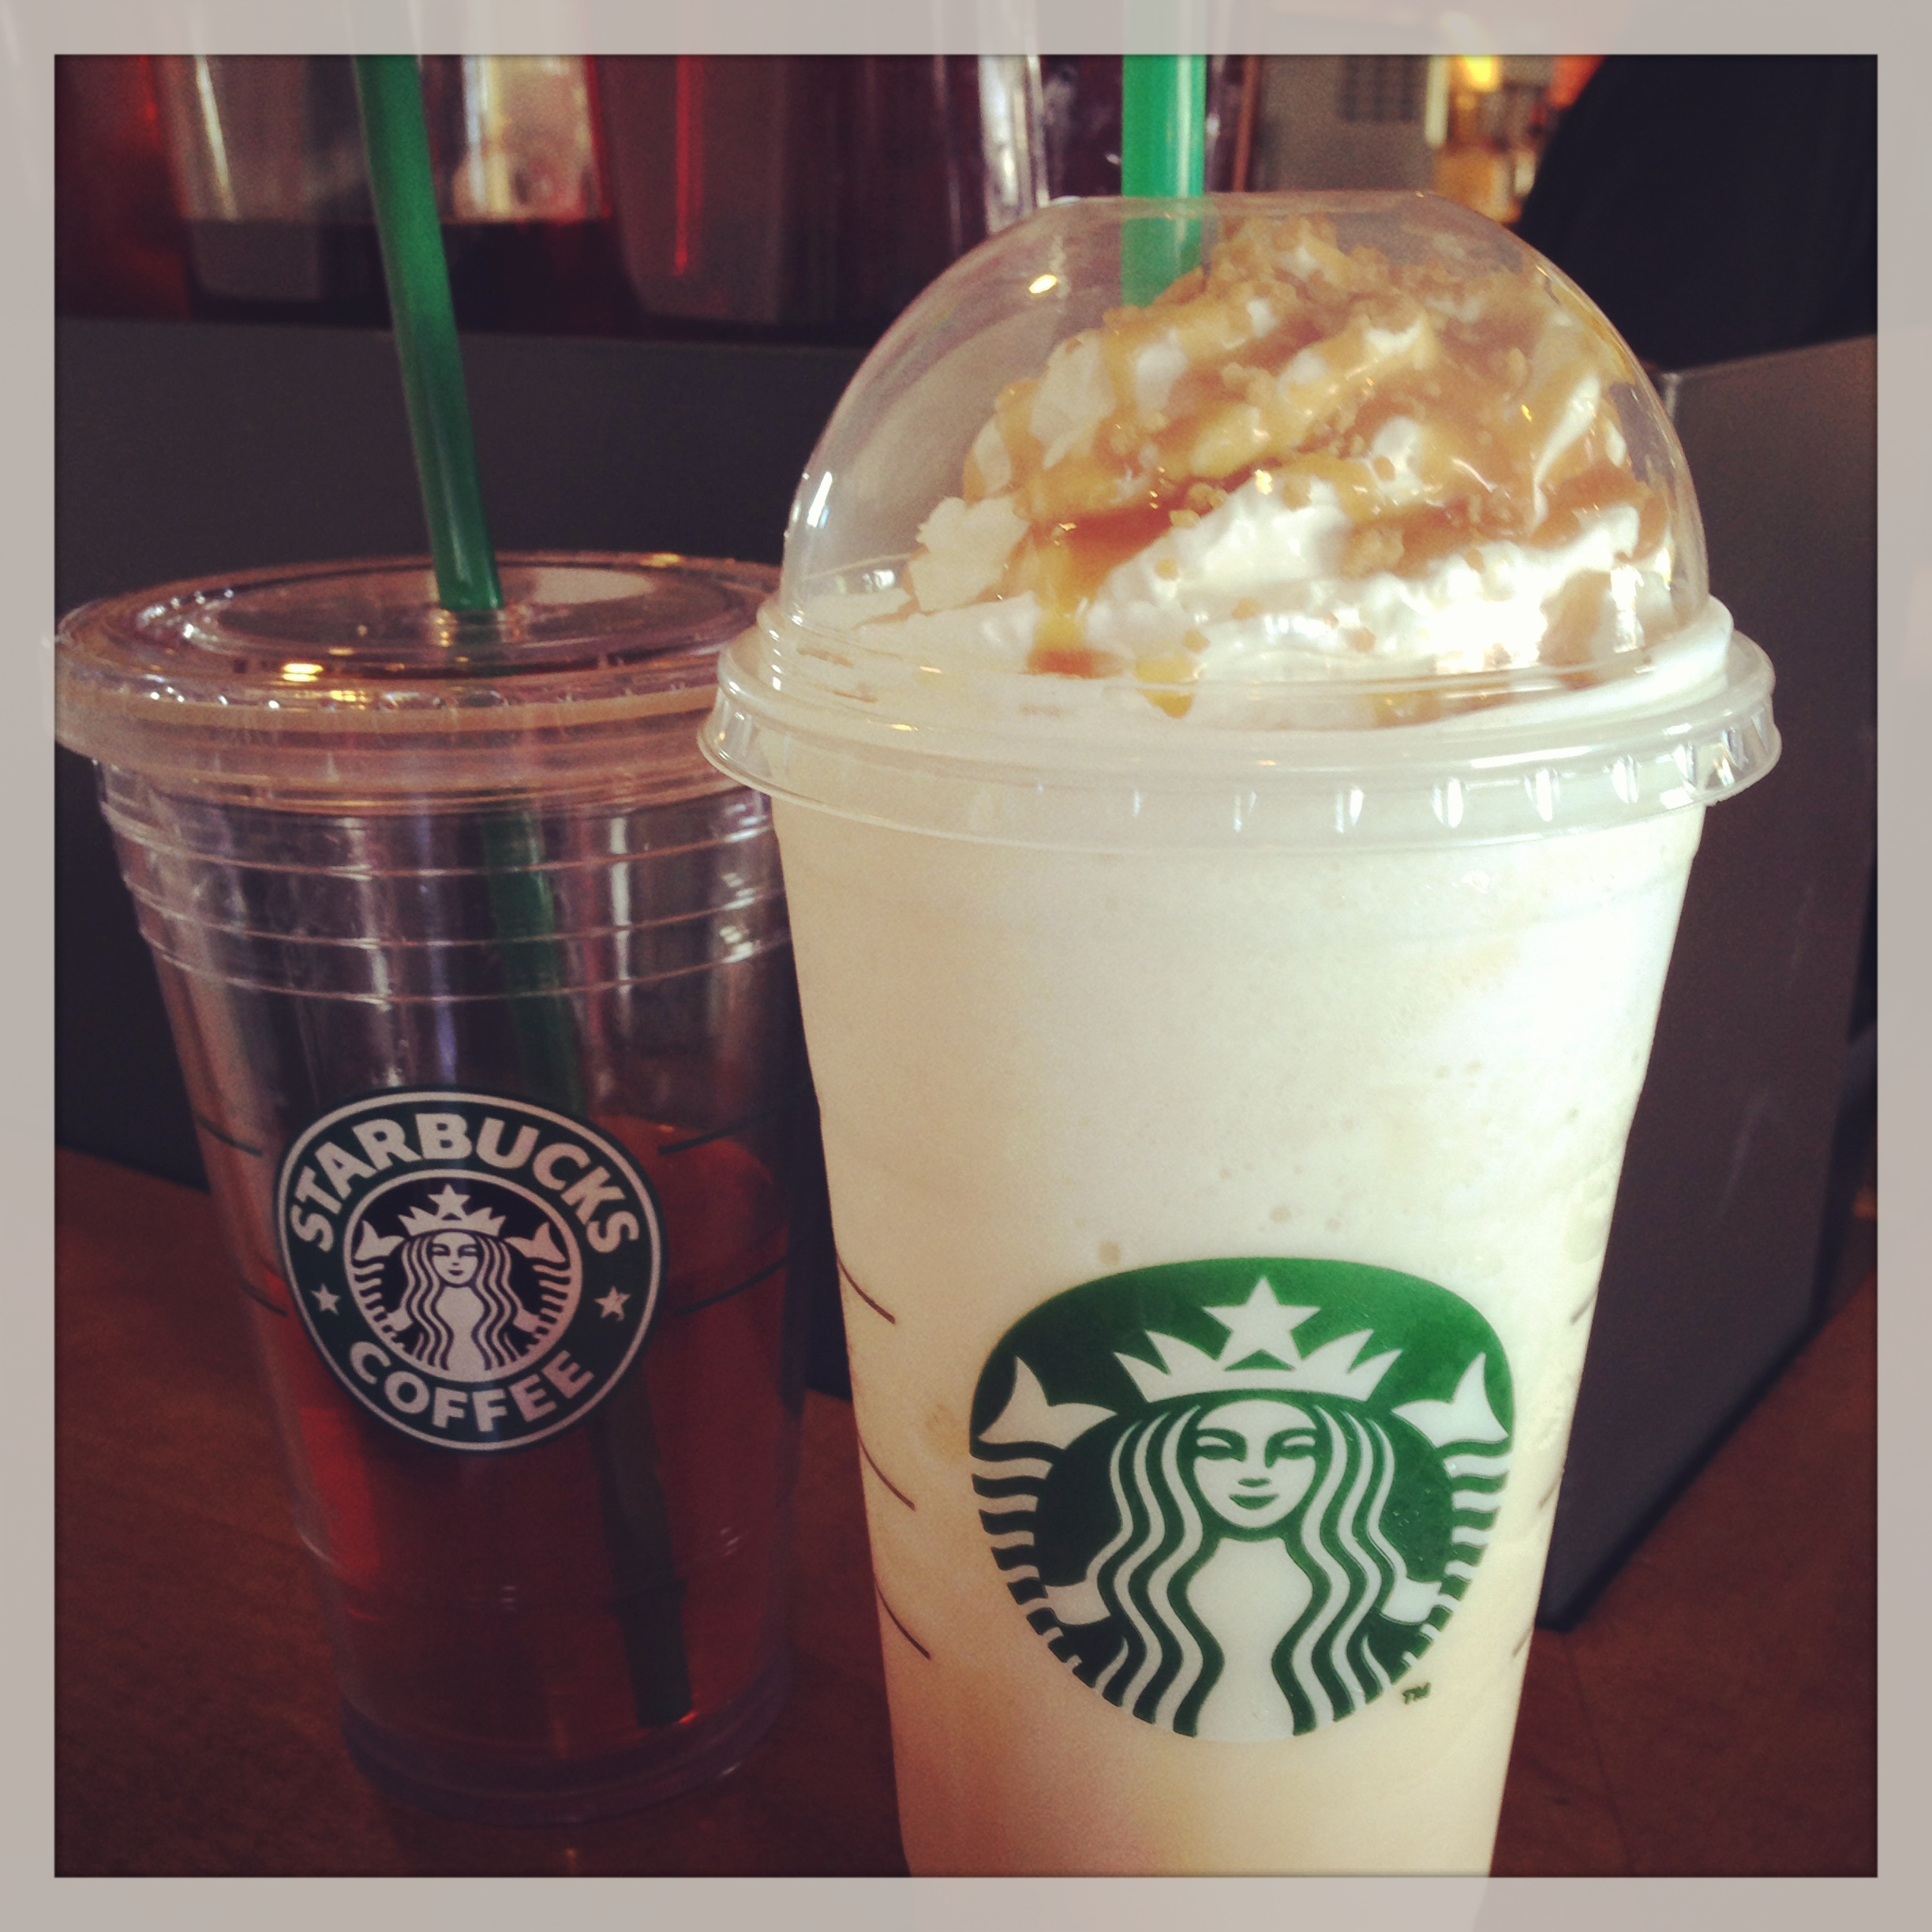 The Washington Apple Frappuccino